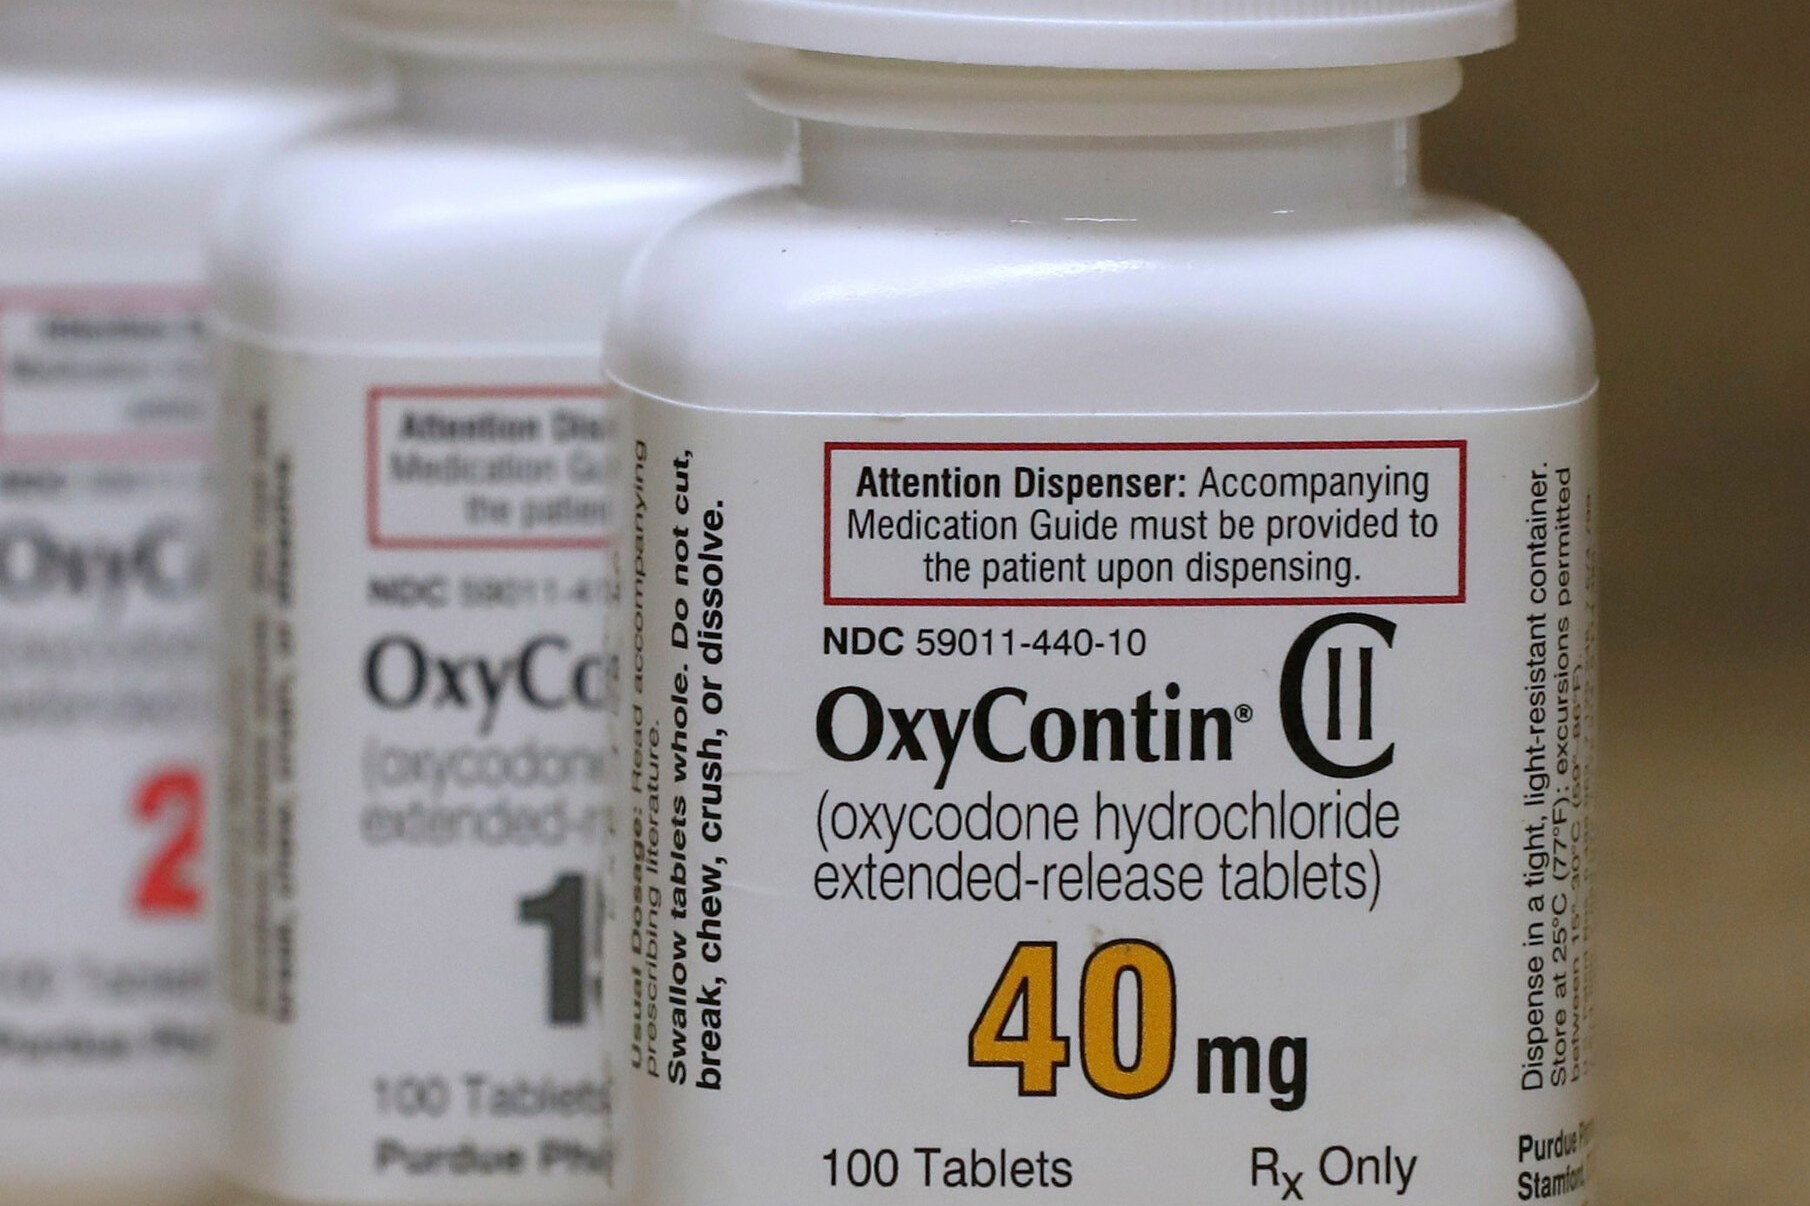 McKinsey Issues a Rare Apology for Its Role in OxyContin Sales